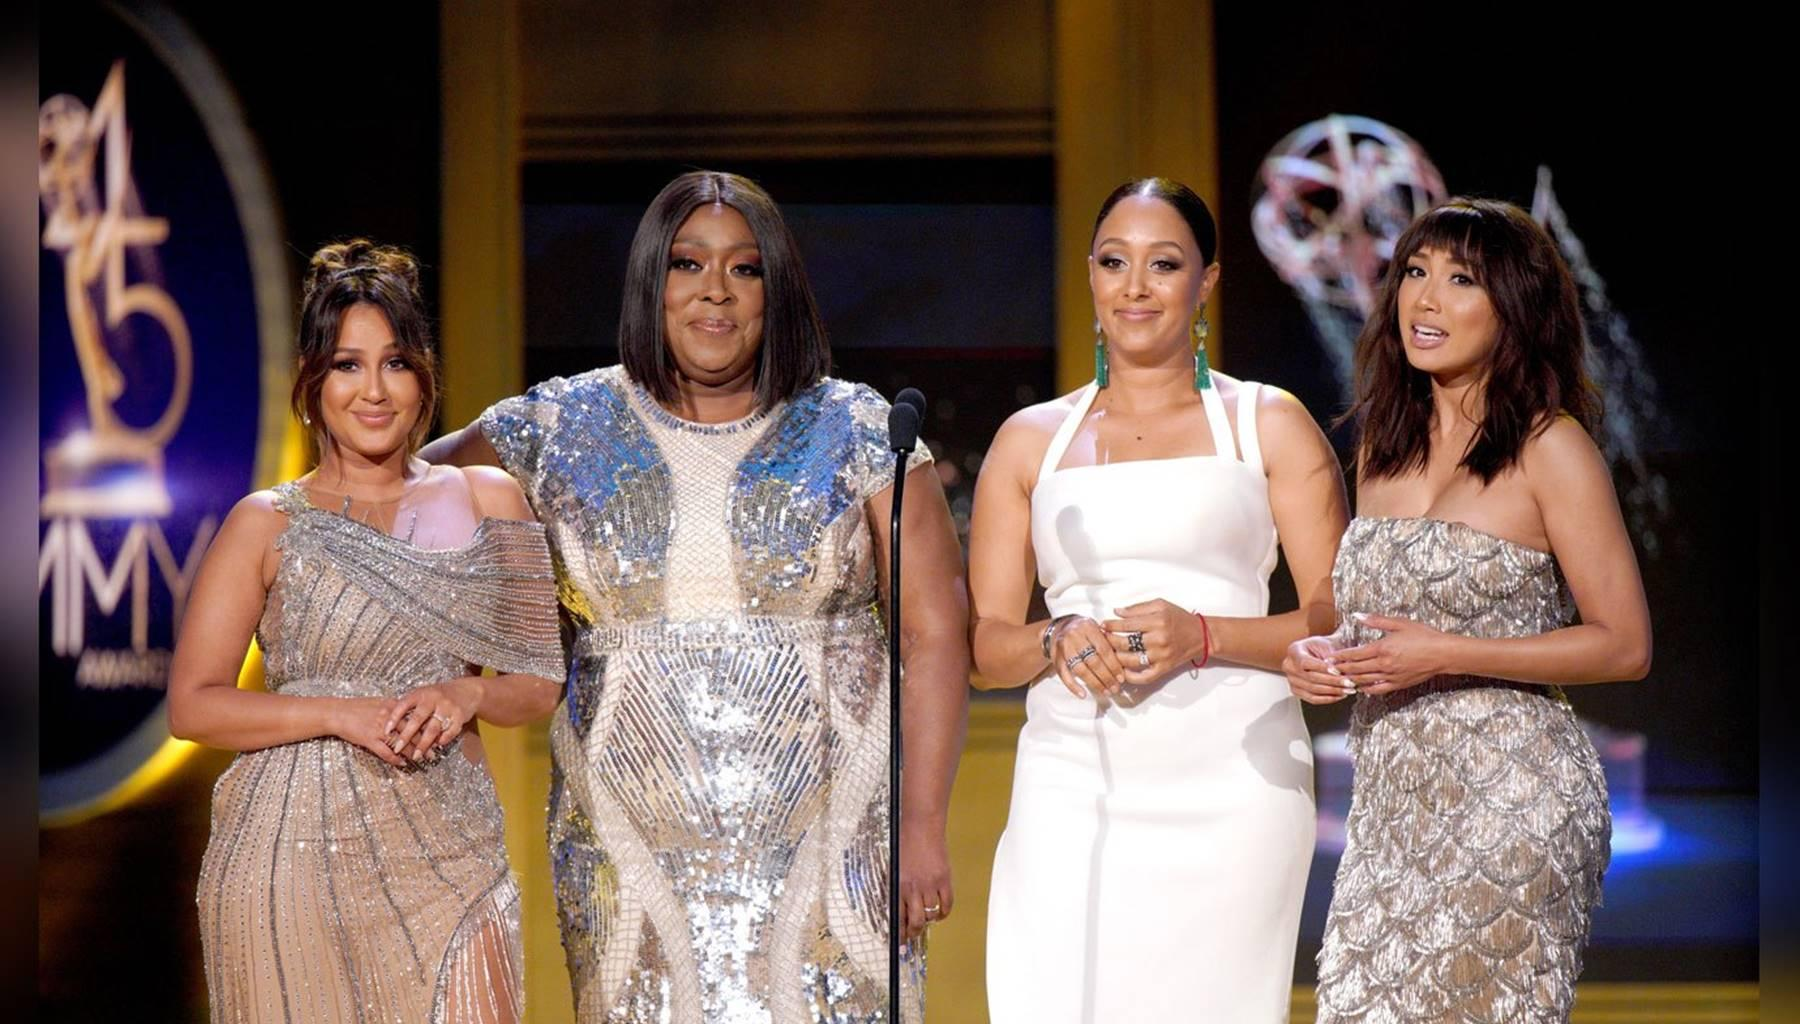 Tamera Mowry-Housley And Loni Love Might Be Feuding With The Other Ladies Of 'The Real' -- Is Tamar Braxton Getting Vindicated?